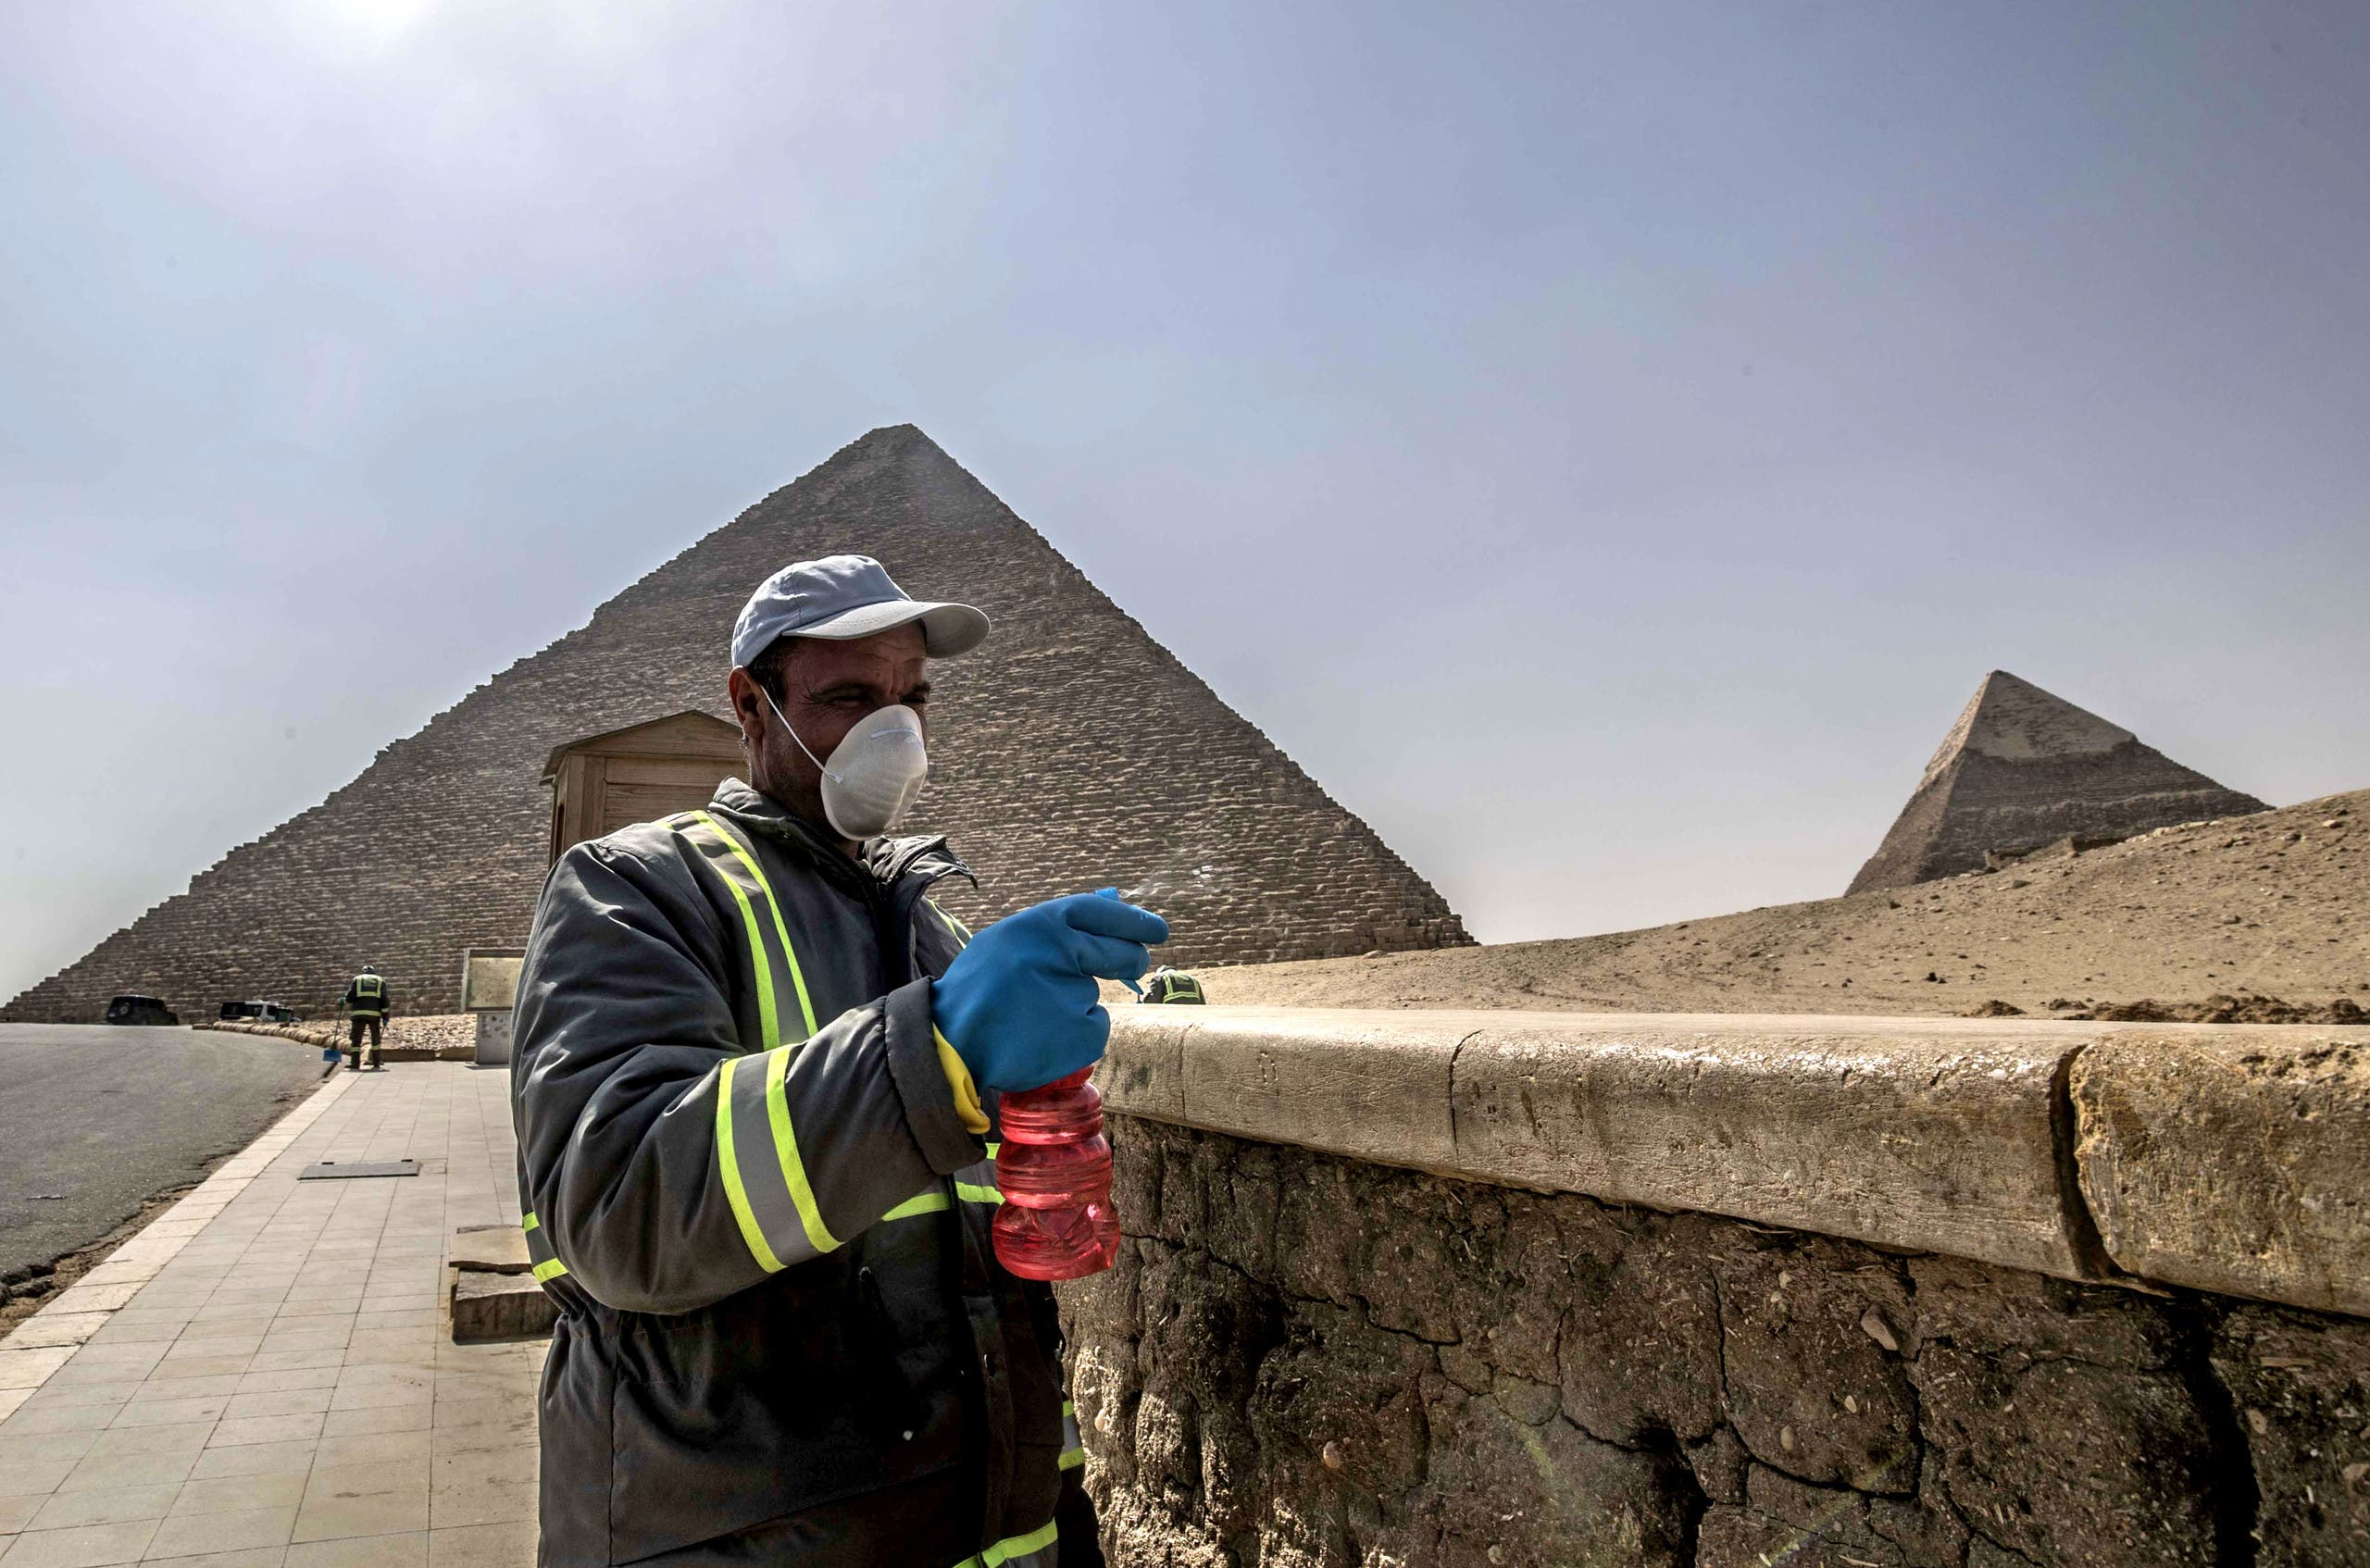 Egyptian municipality workers disinfect the Giza pyramids necropolis on the southwestern outskirts of the Egyptian capital Cairo on March 25, 2020 as protective a measure against the spread of the coronavirus COVID-19.(AFP)